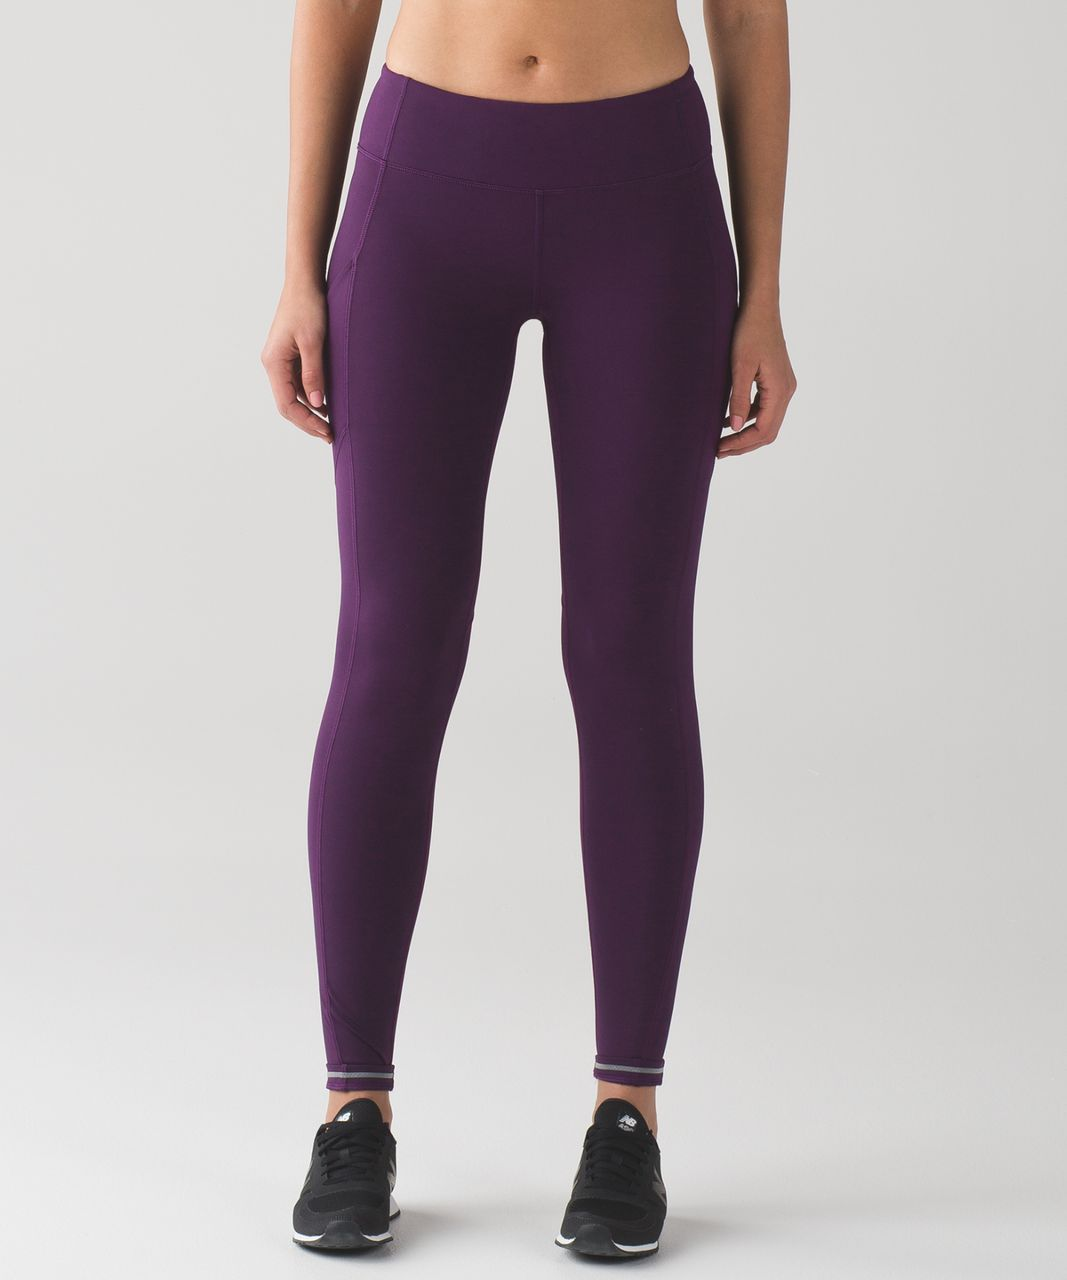 Lululemon Speed Tight V (Brushed) - Darkest Magenta